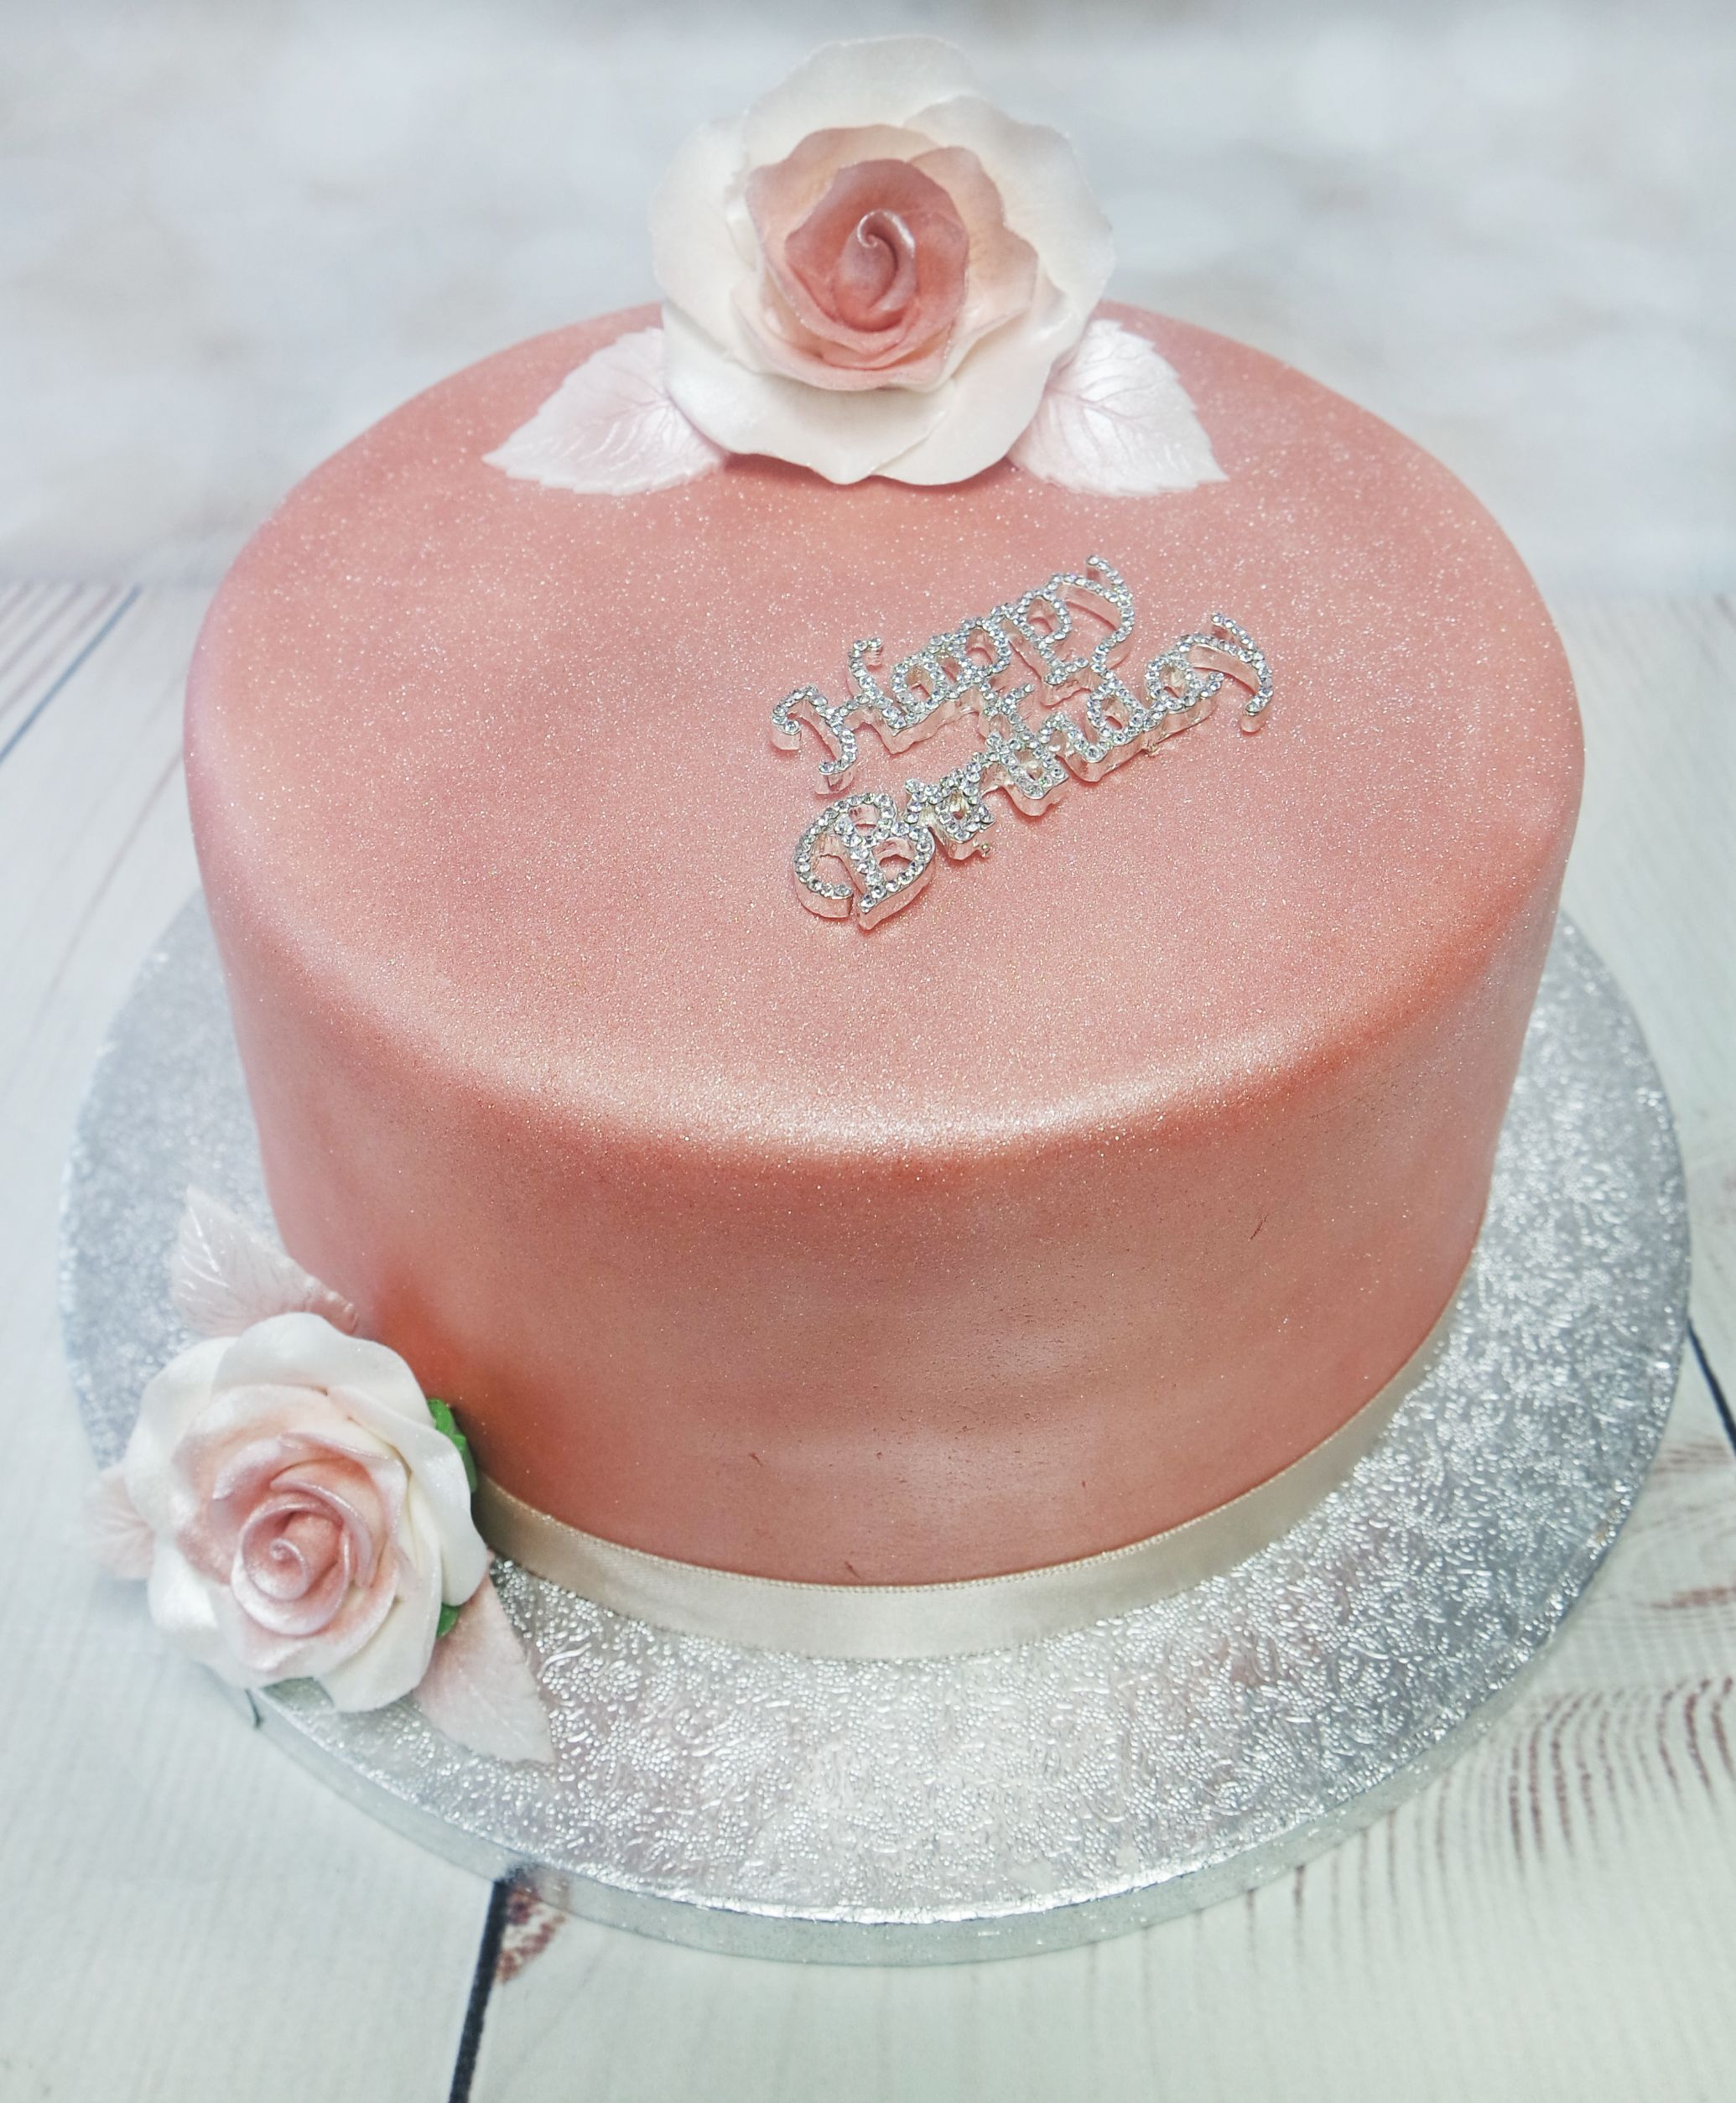 Surprising Simple And Elegant Rose Gold Cake Rosegoldcake Funny Birthday Cards Online Bapapcheapnameinfo